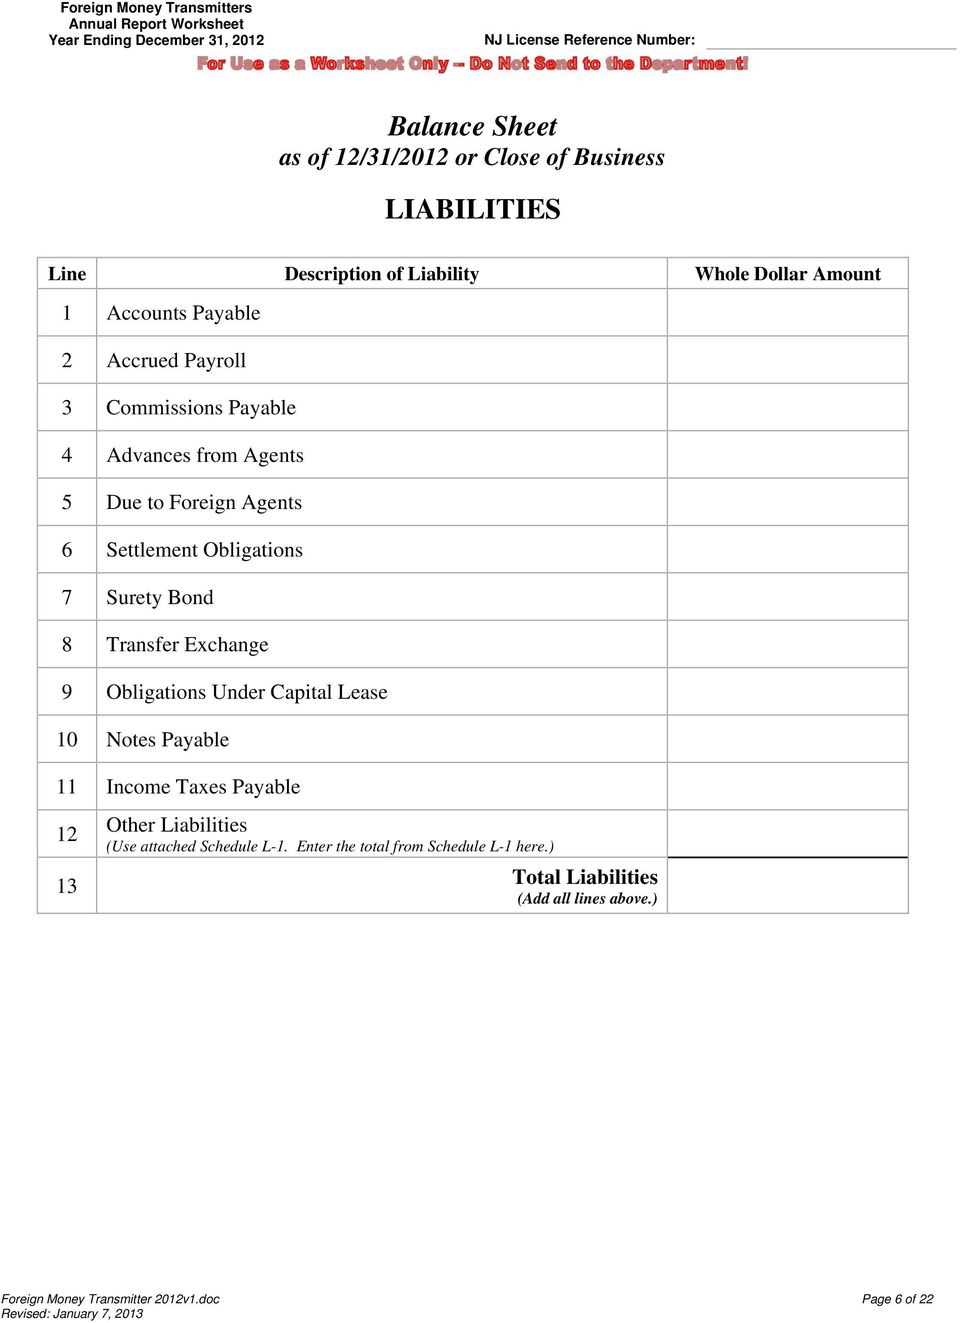 Exchange 9 Obligations Under Capital Lease 10 Notes Payable 11 Income Taxes Payable 12 13 Other Liabilities (Use attached